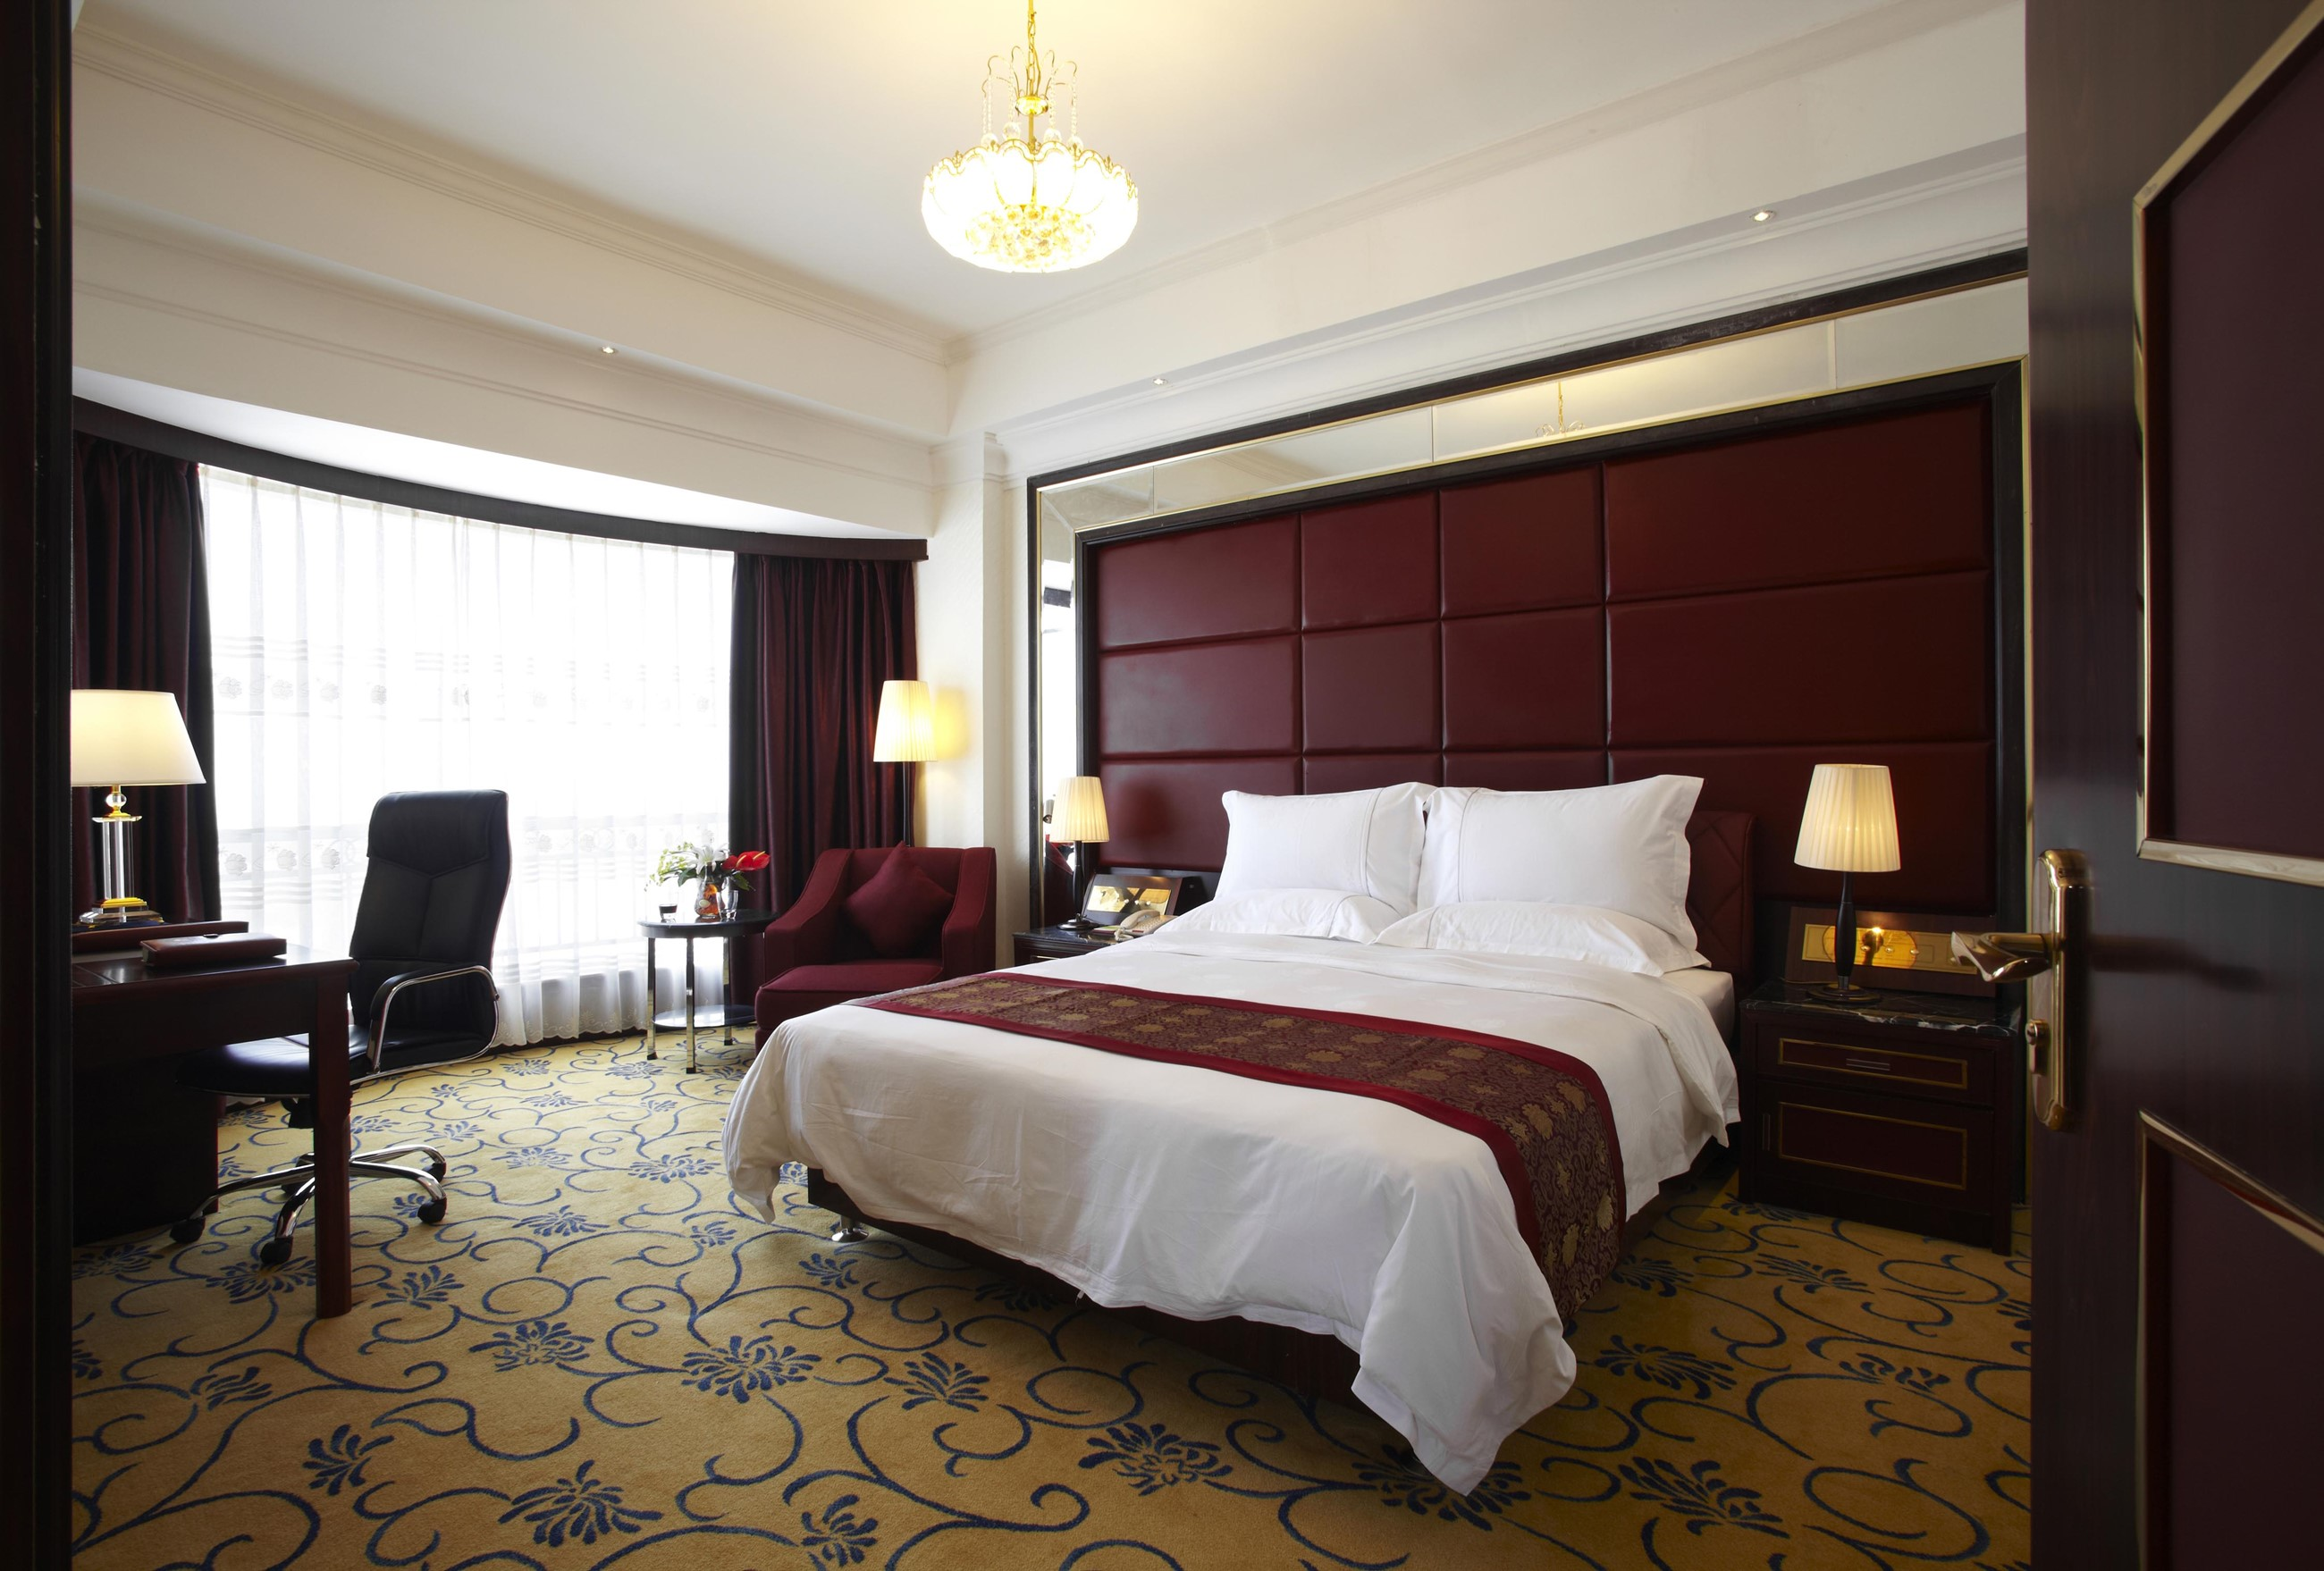 Photo of clean hotel room featuring king-sized bed, brown wood finish